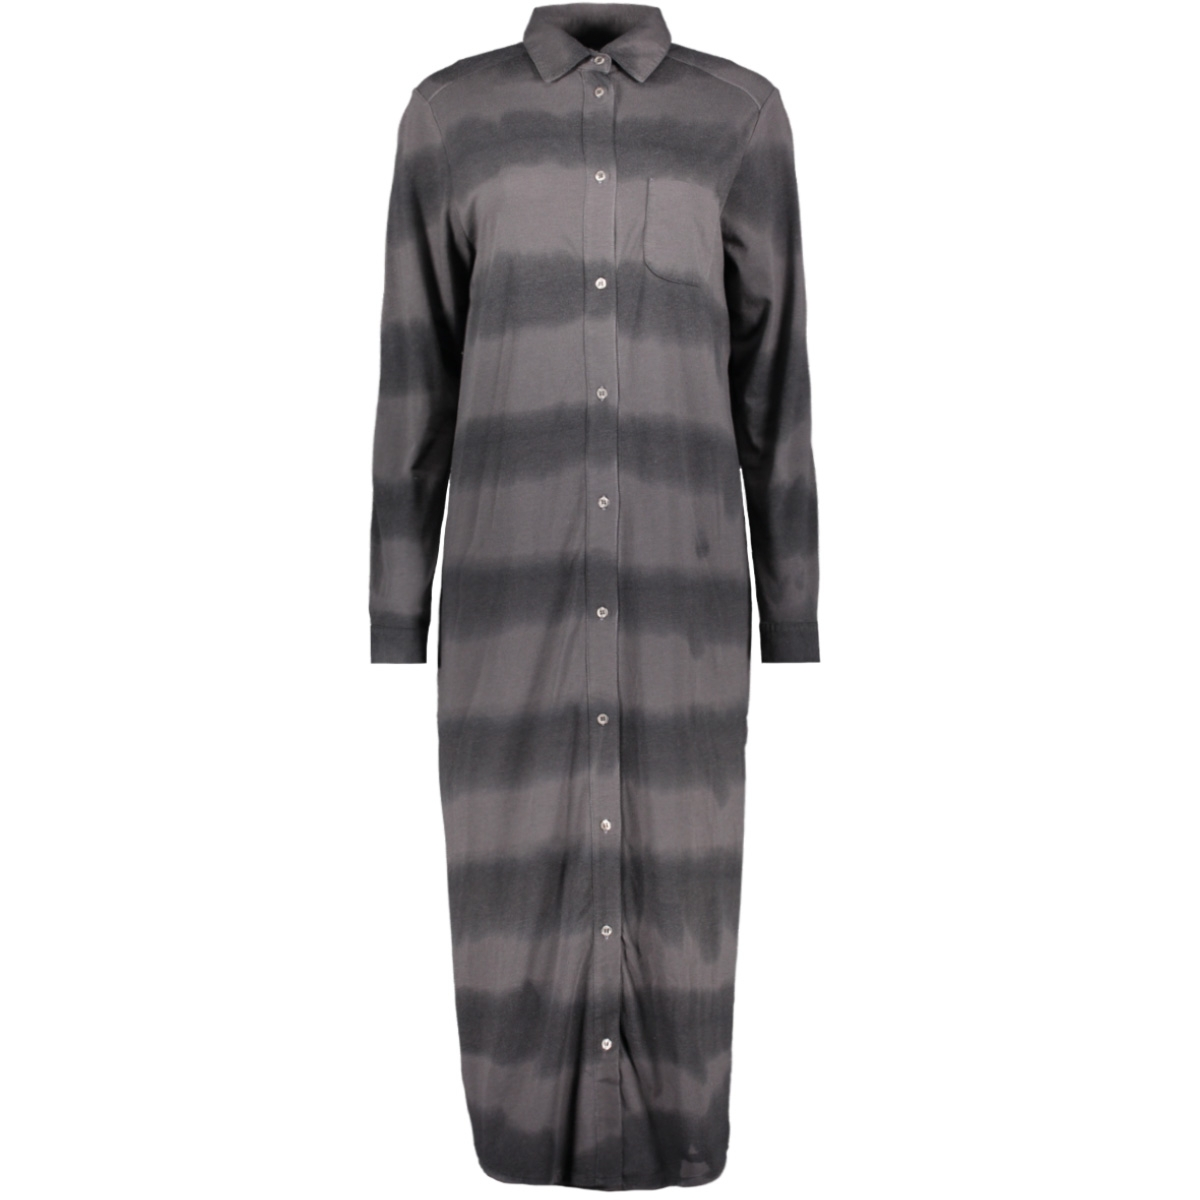 long shirt dress 20 415 0201 10 days jurk pavement